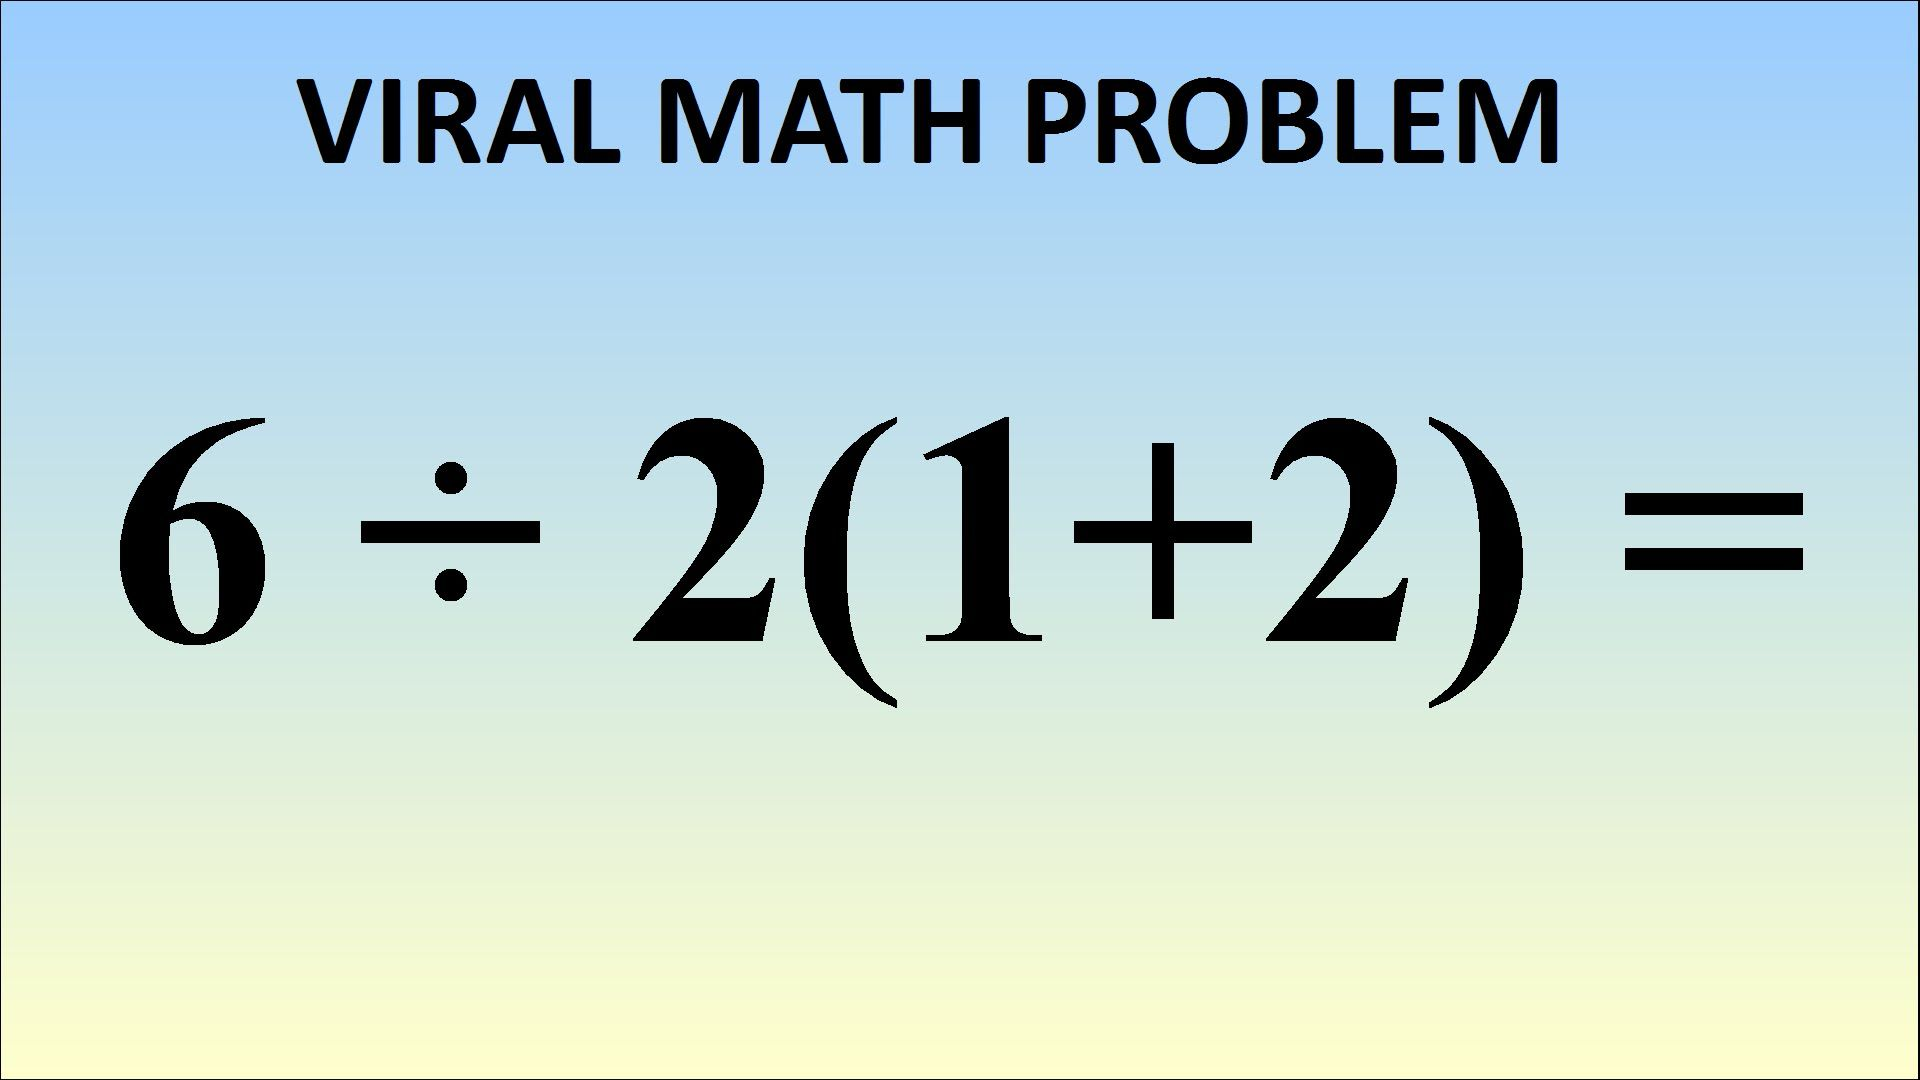 What is 6·2 1 2 = This problem went viral and generated millions